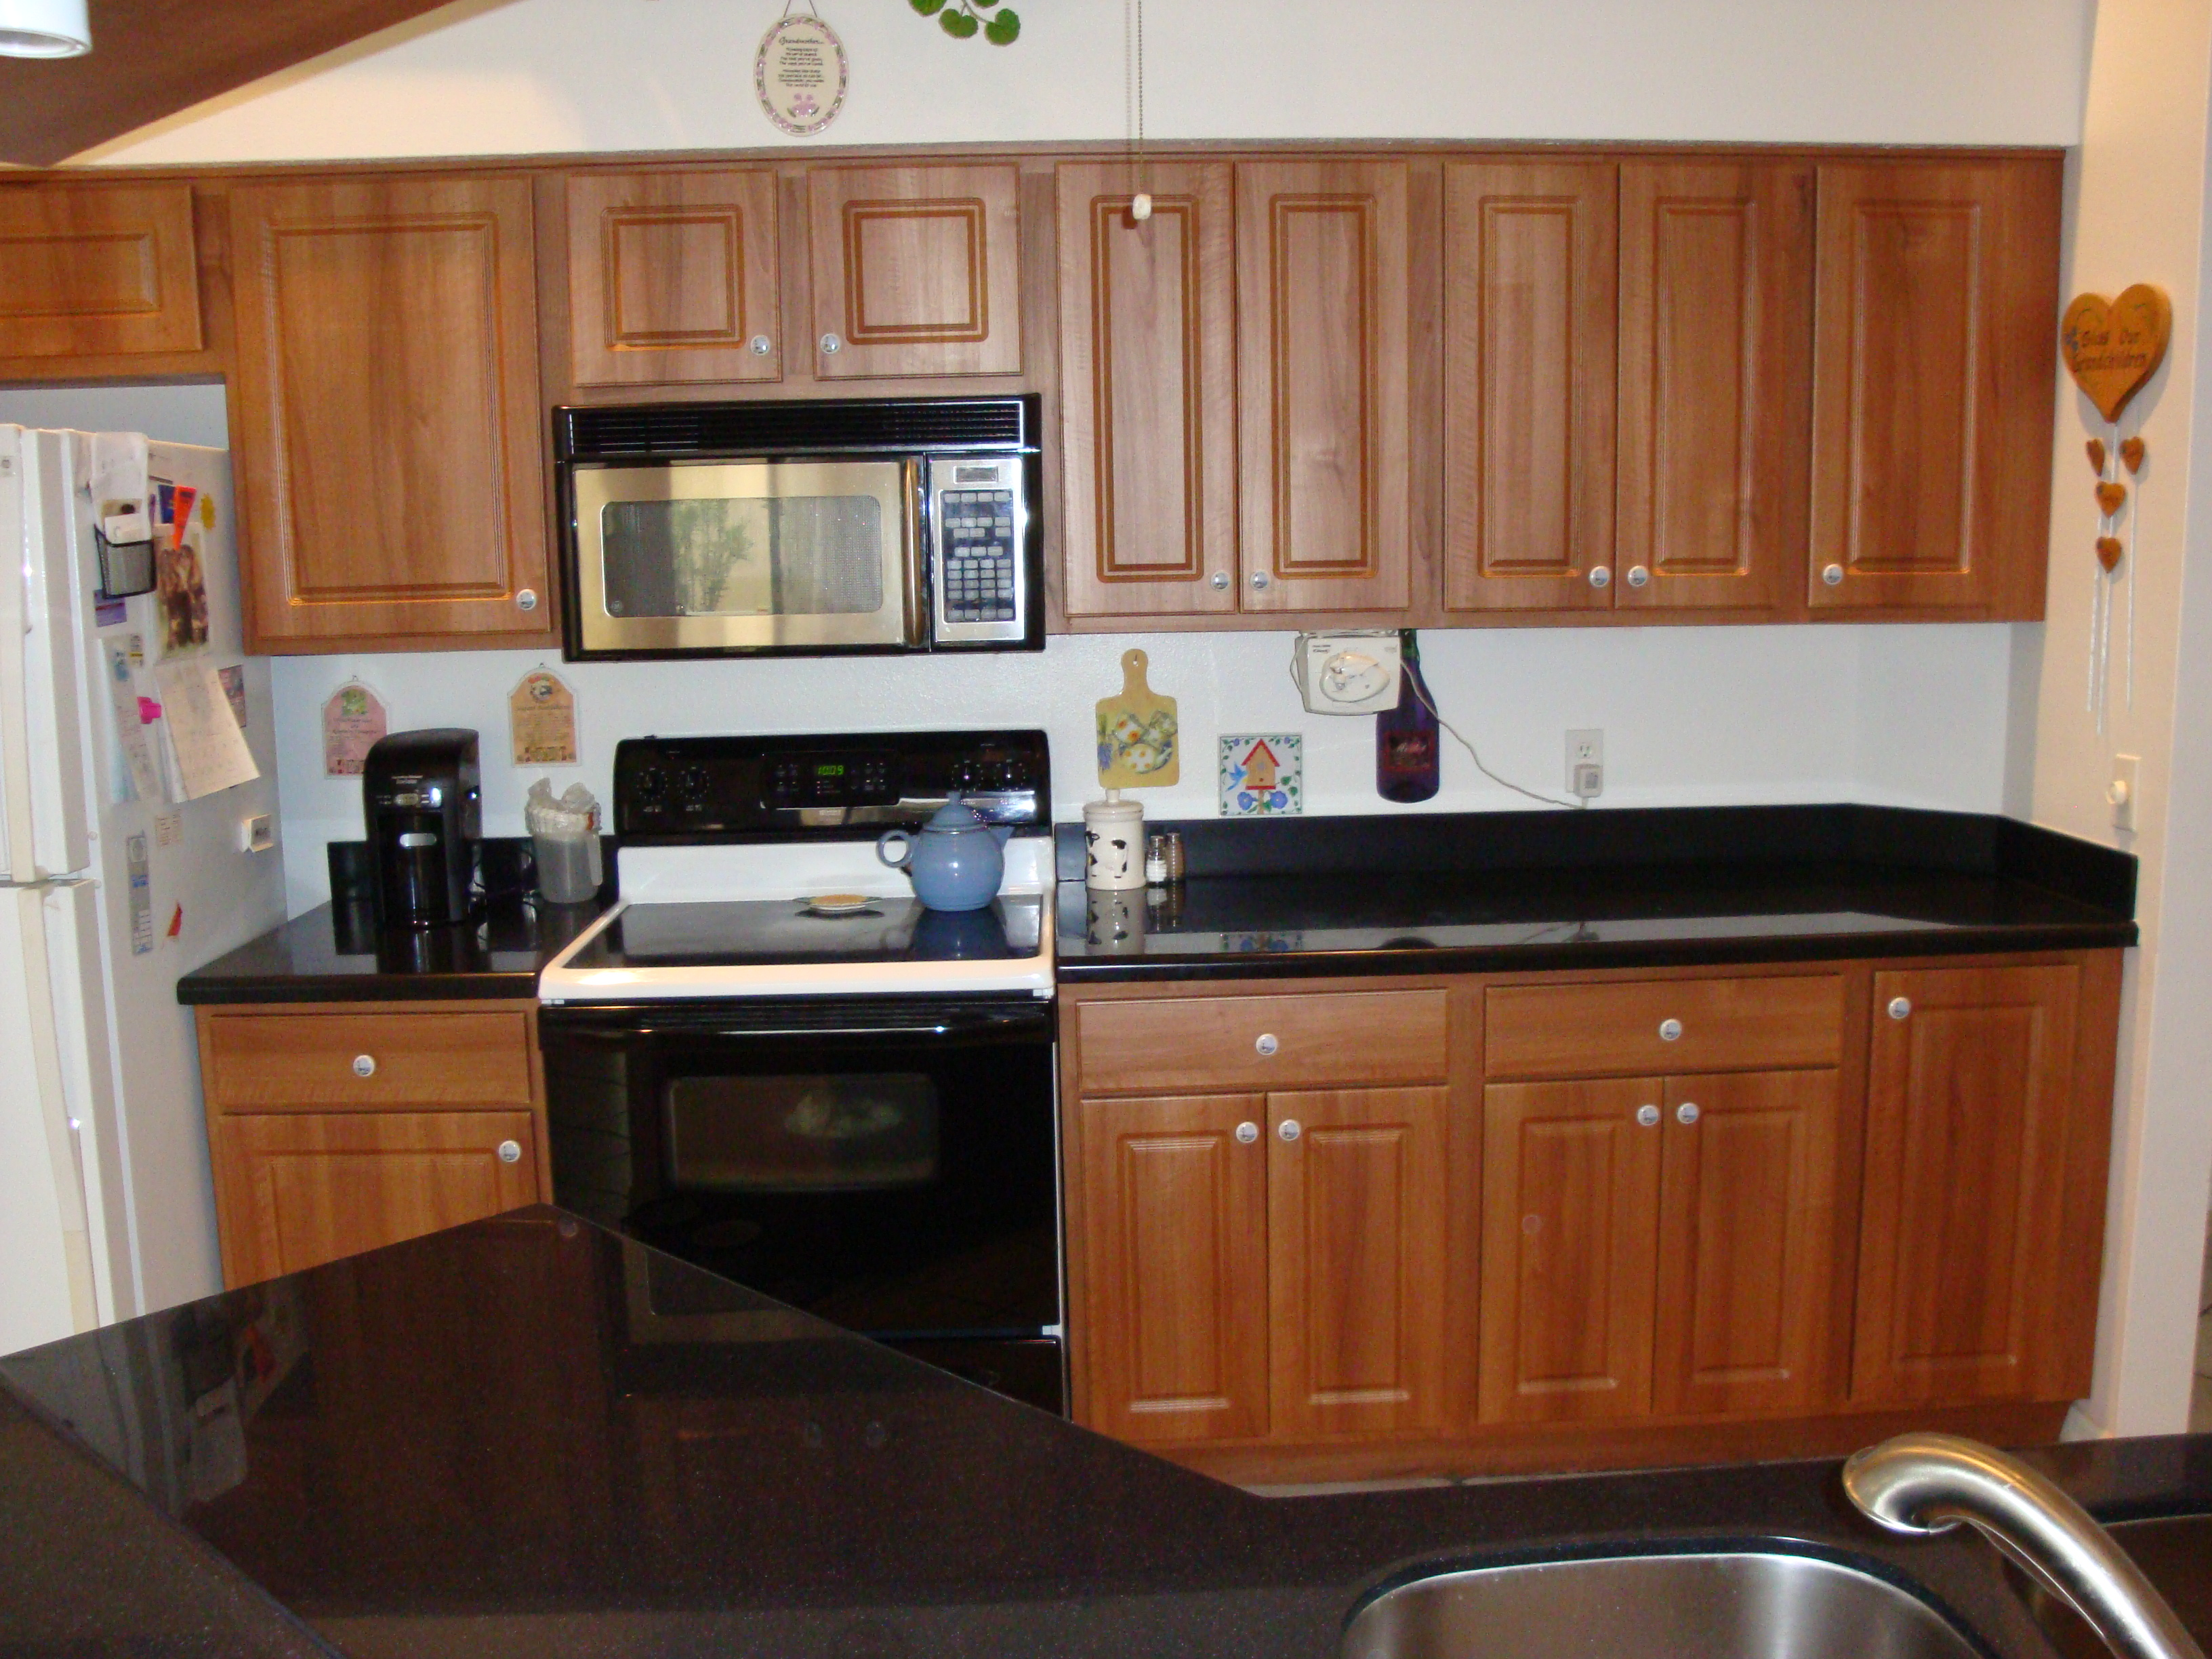 laminate best to countertop deductour lowes way paint formica cut granite com cost decor s replace edges